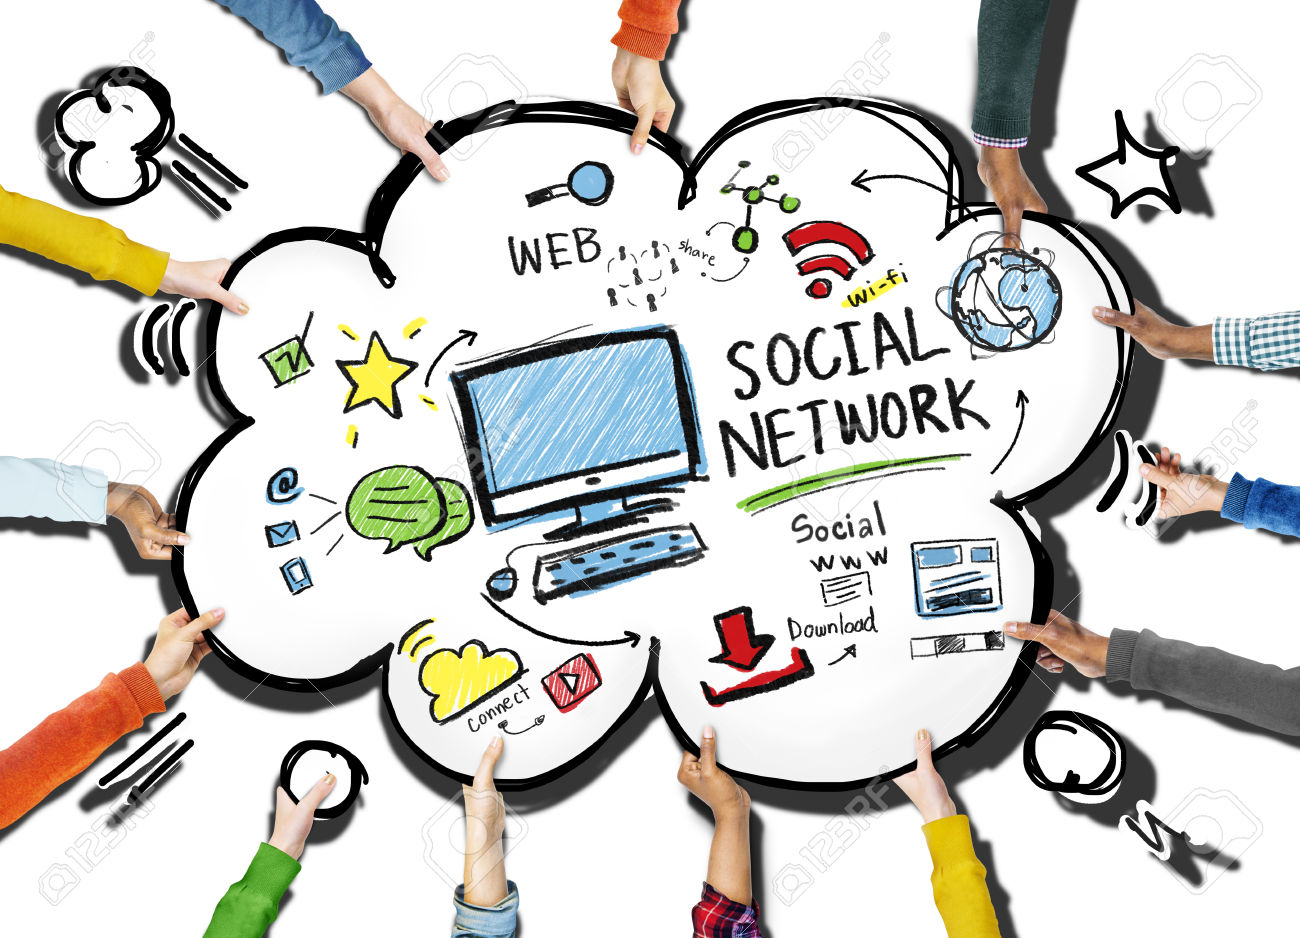 social media and network technology benefits Advocates point out the benefits that social media provides for today's digital learners while  fluent in web and social networking  campus technology .